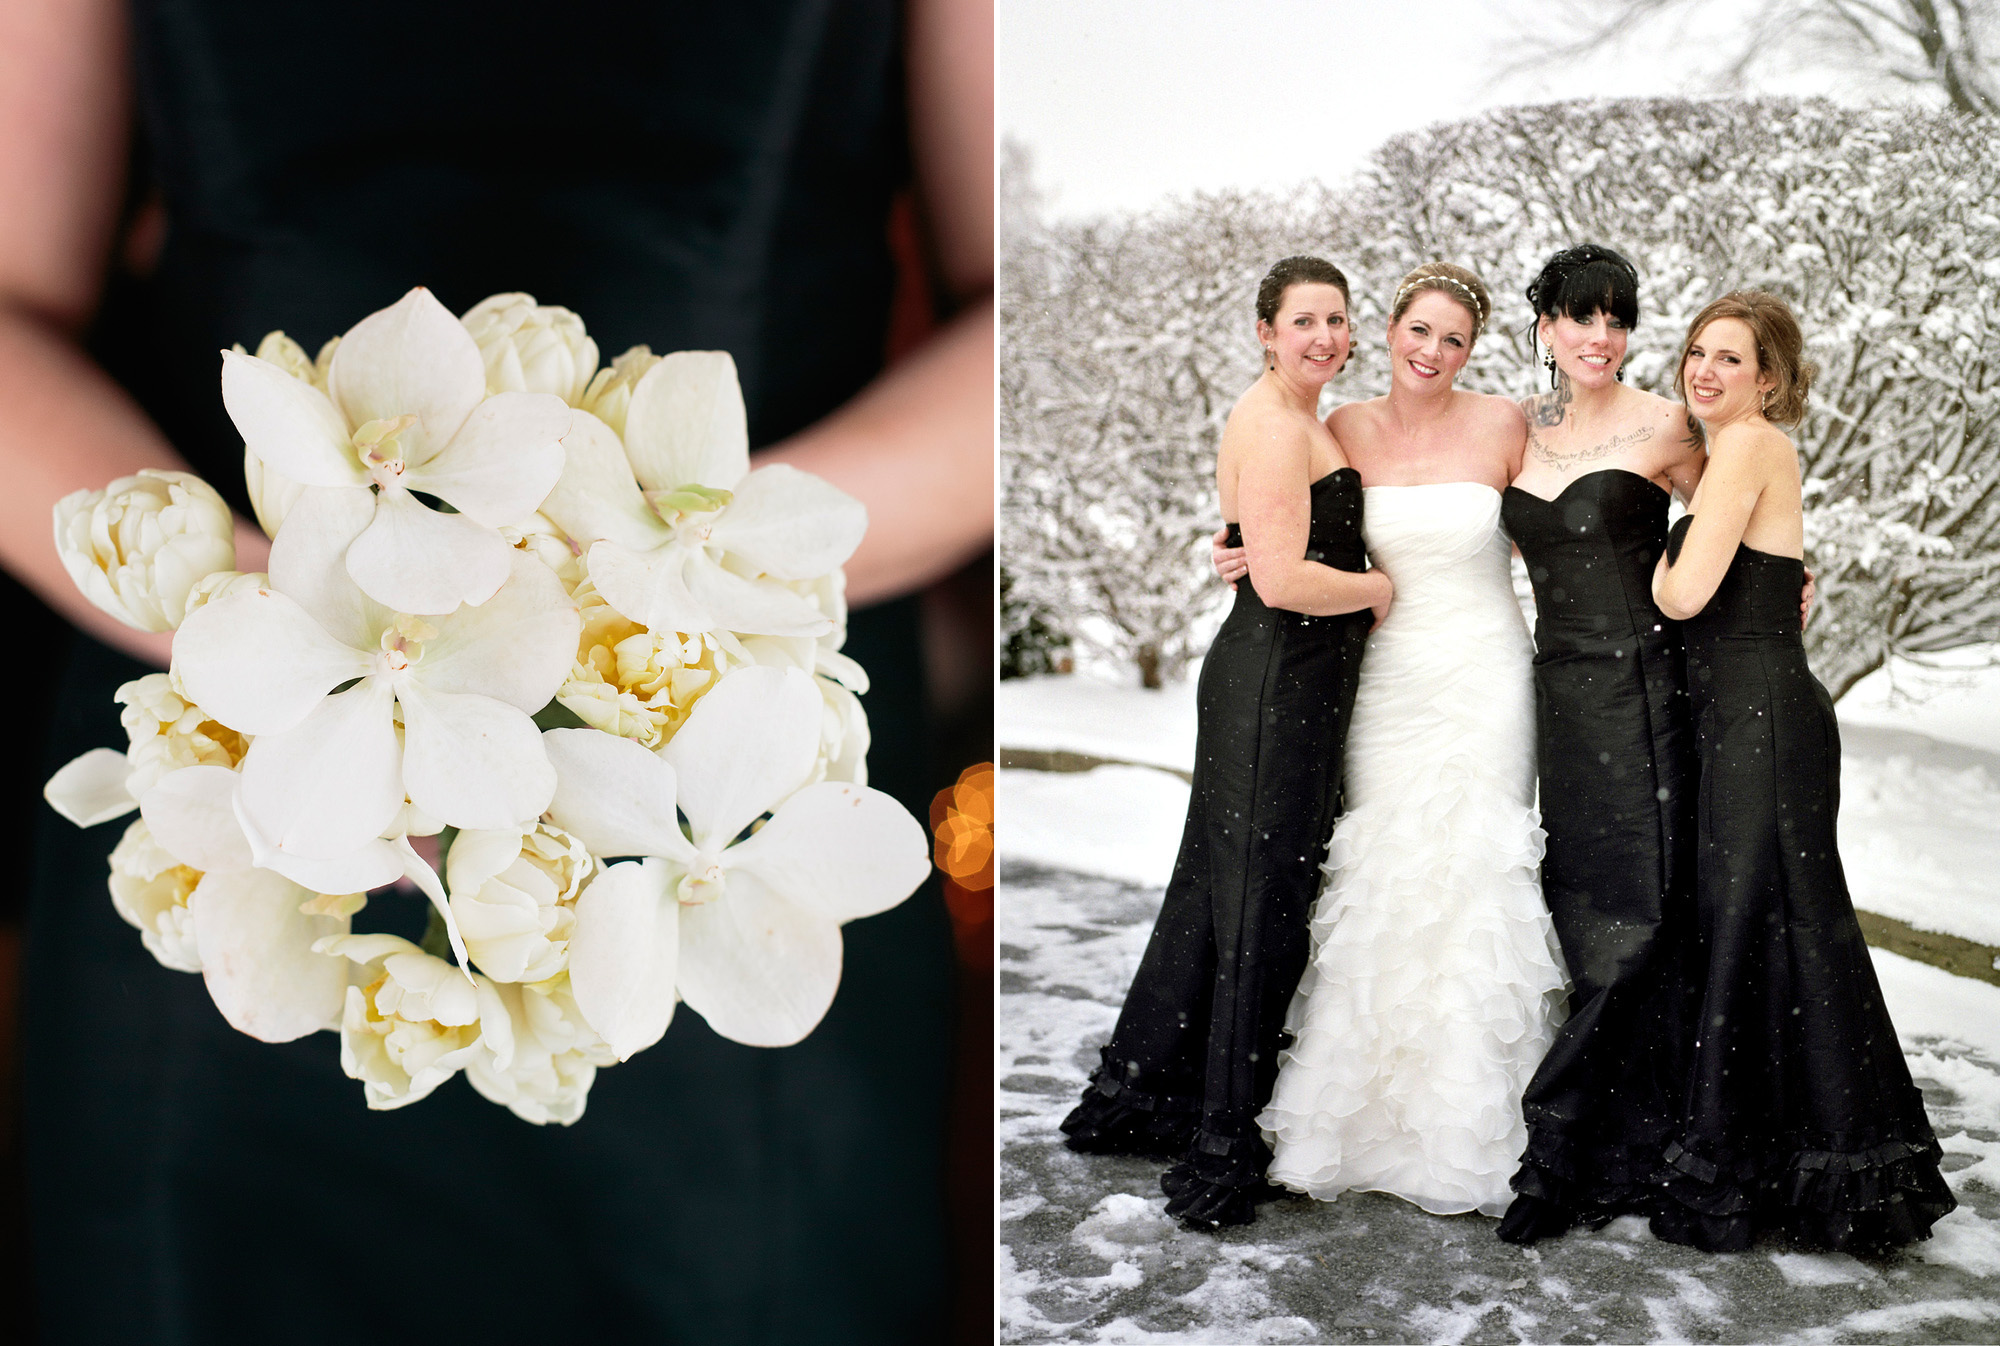 Radnor-Hunt-Club-Winter-Wedding-Philadelphia-Weddings-Magazine020.jpg